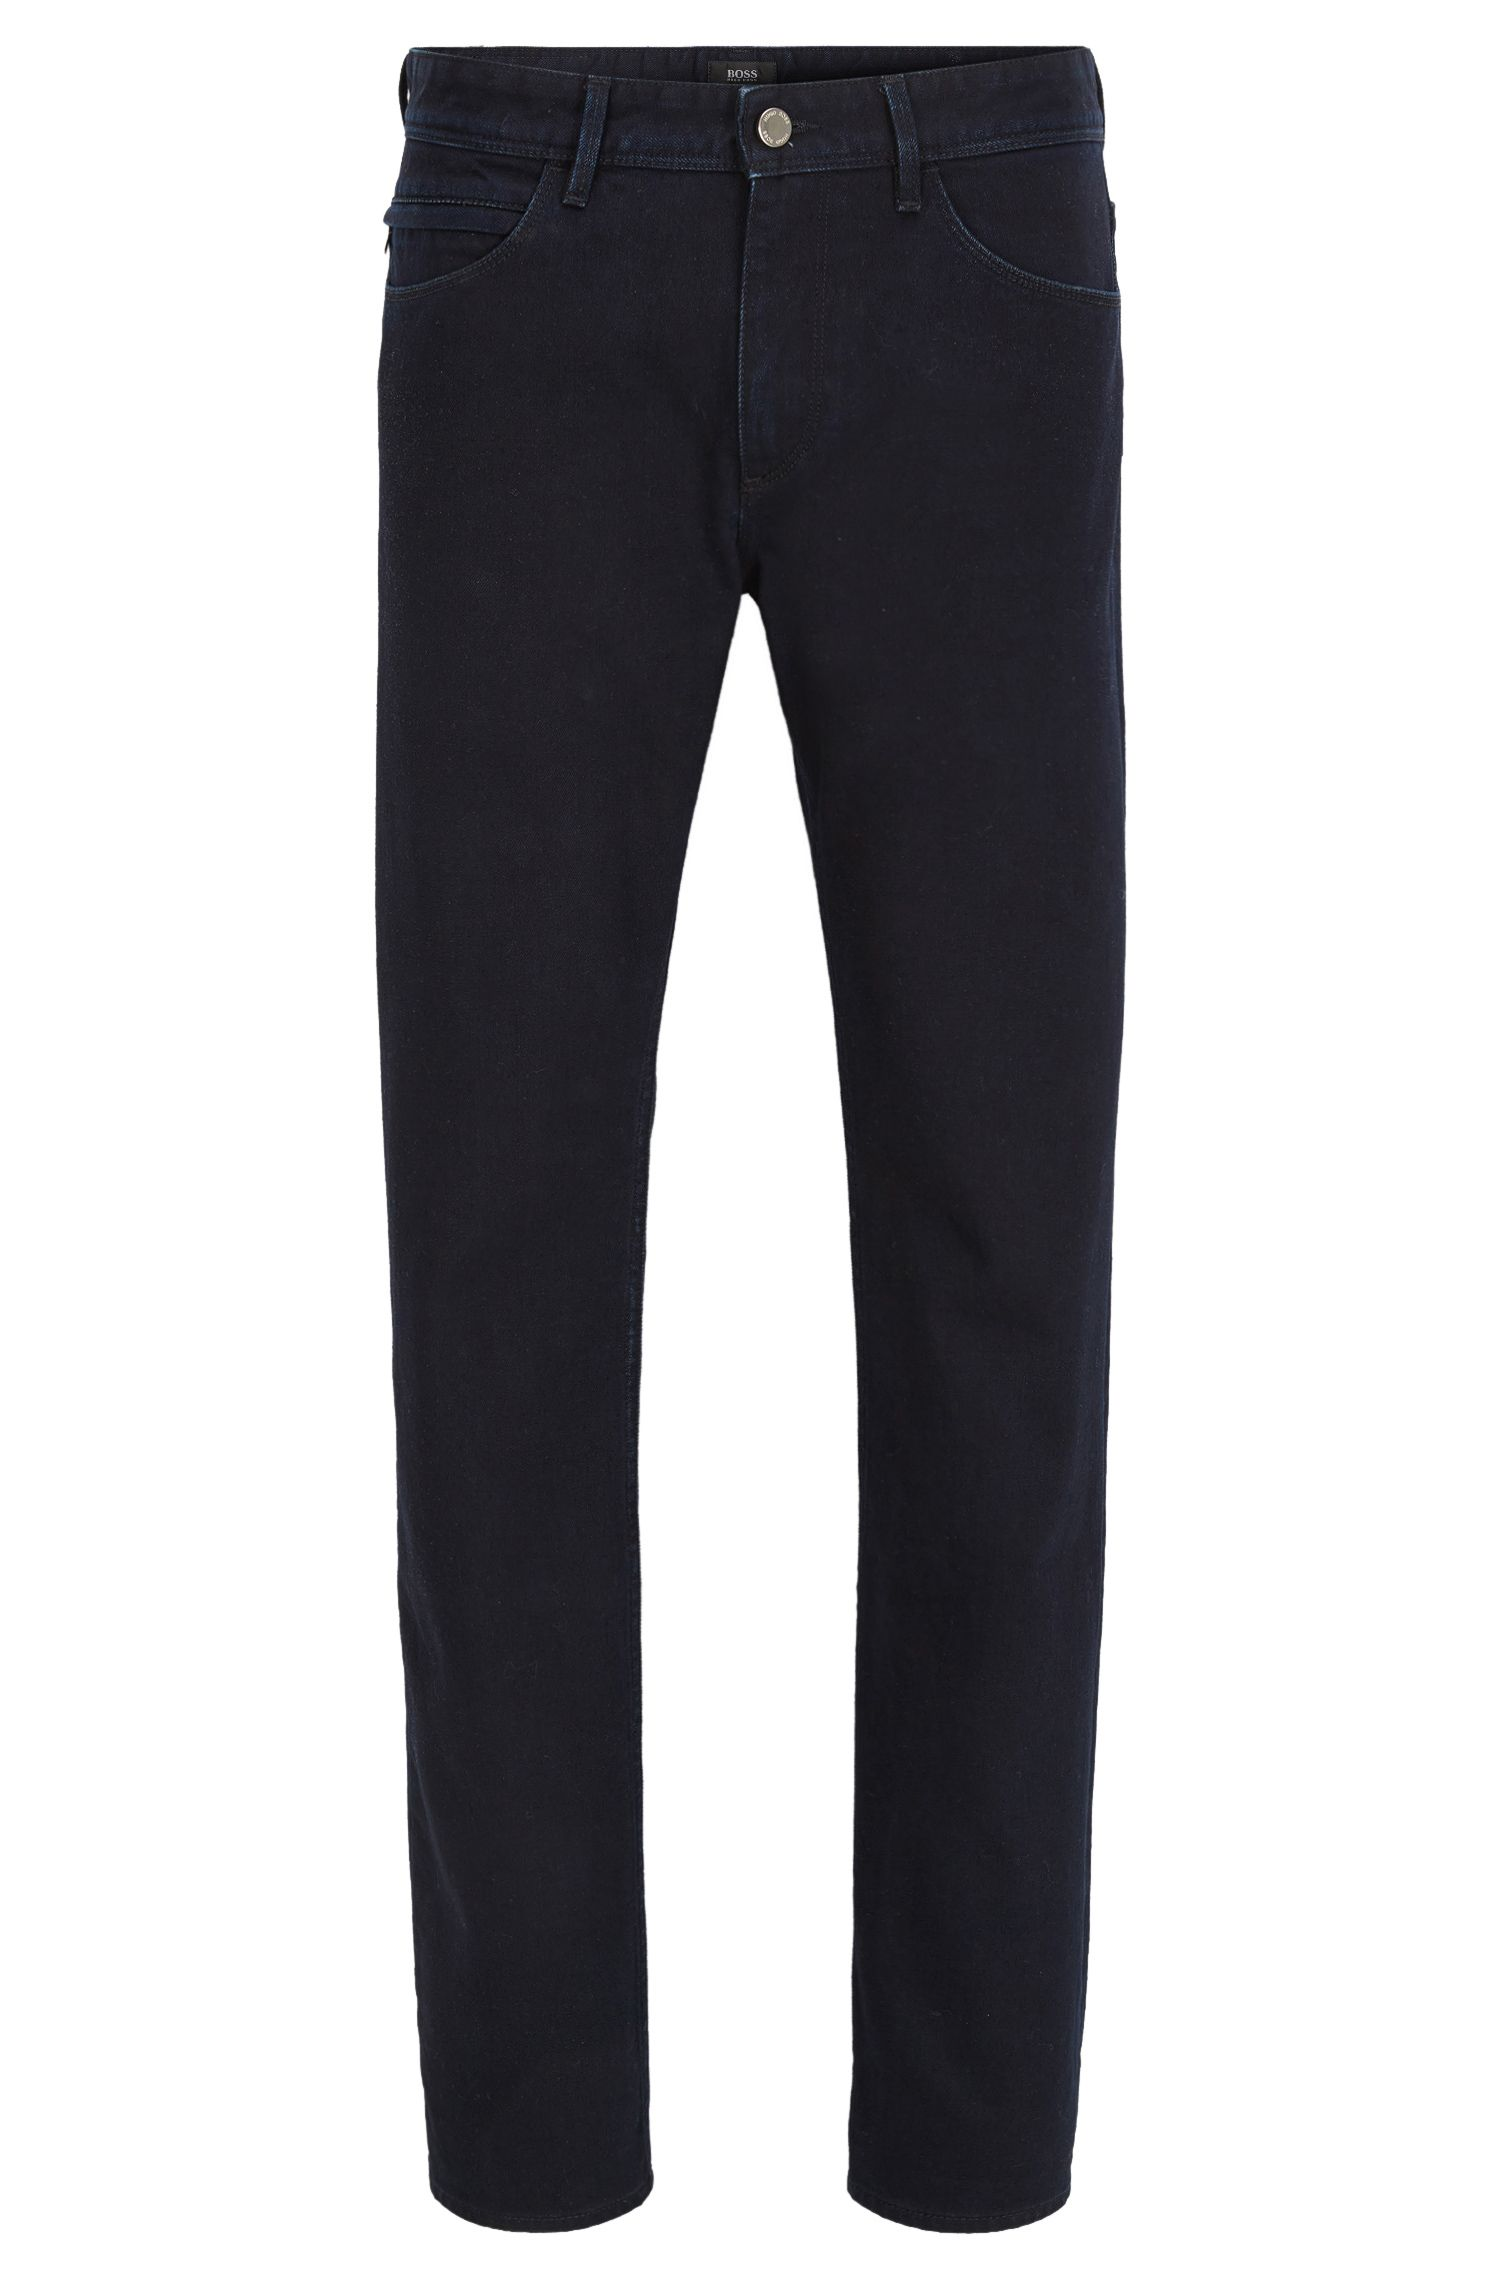 Slim-fit rinsed blue-black jeans in stretch denim